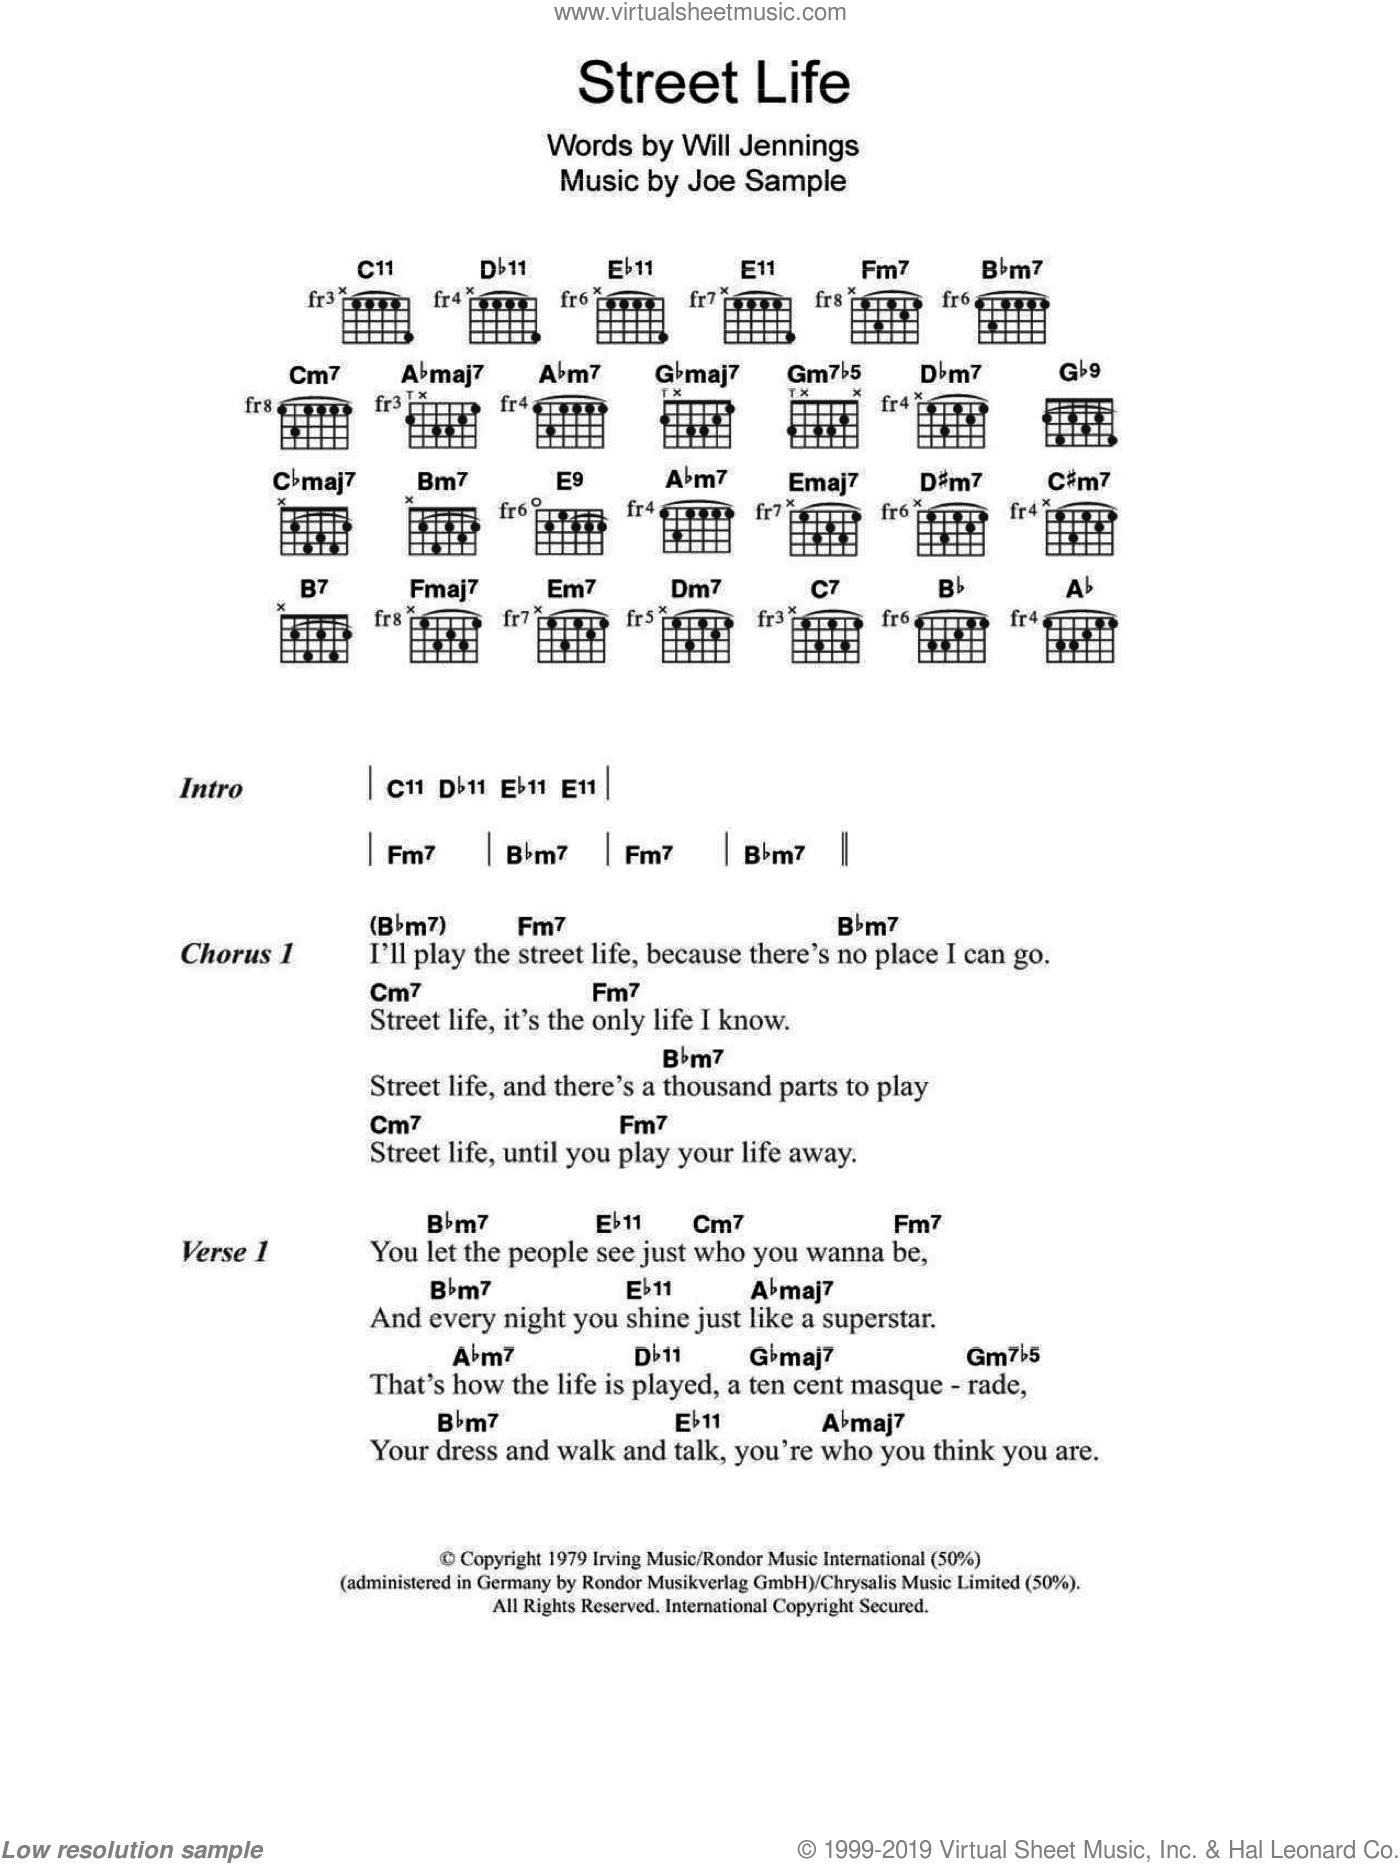 Street Life sheet music for guitar (chords) by Will Jennings